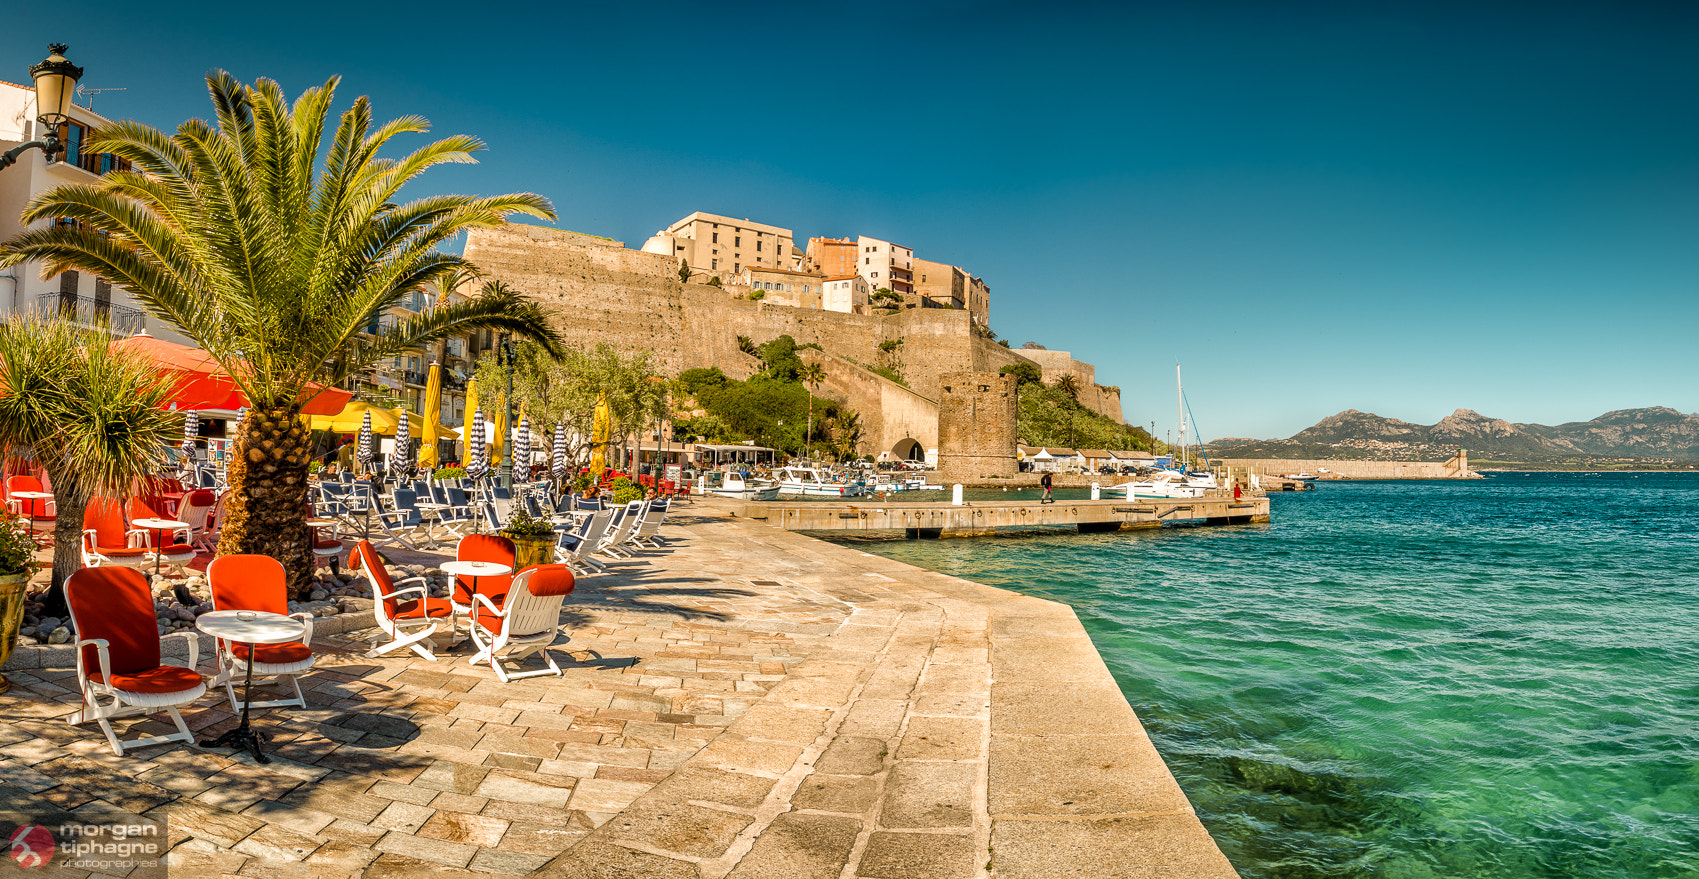 Photograph Calvi by Morgan Tiphagne on 500px